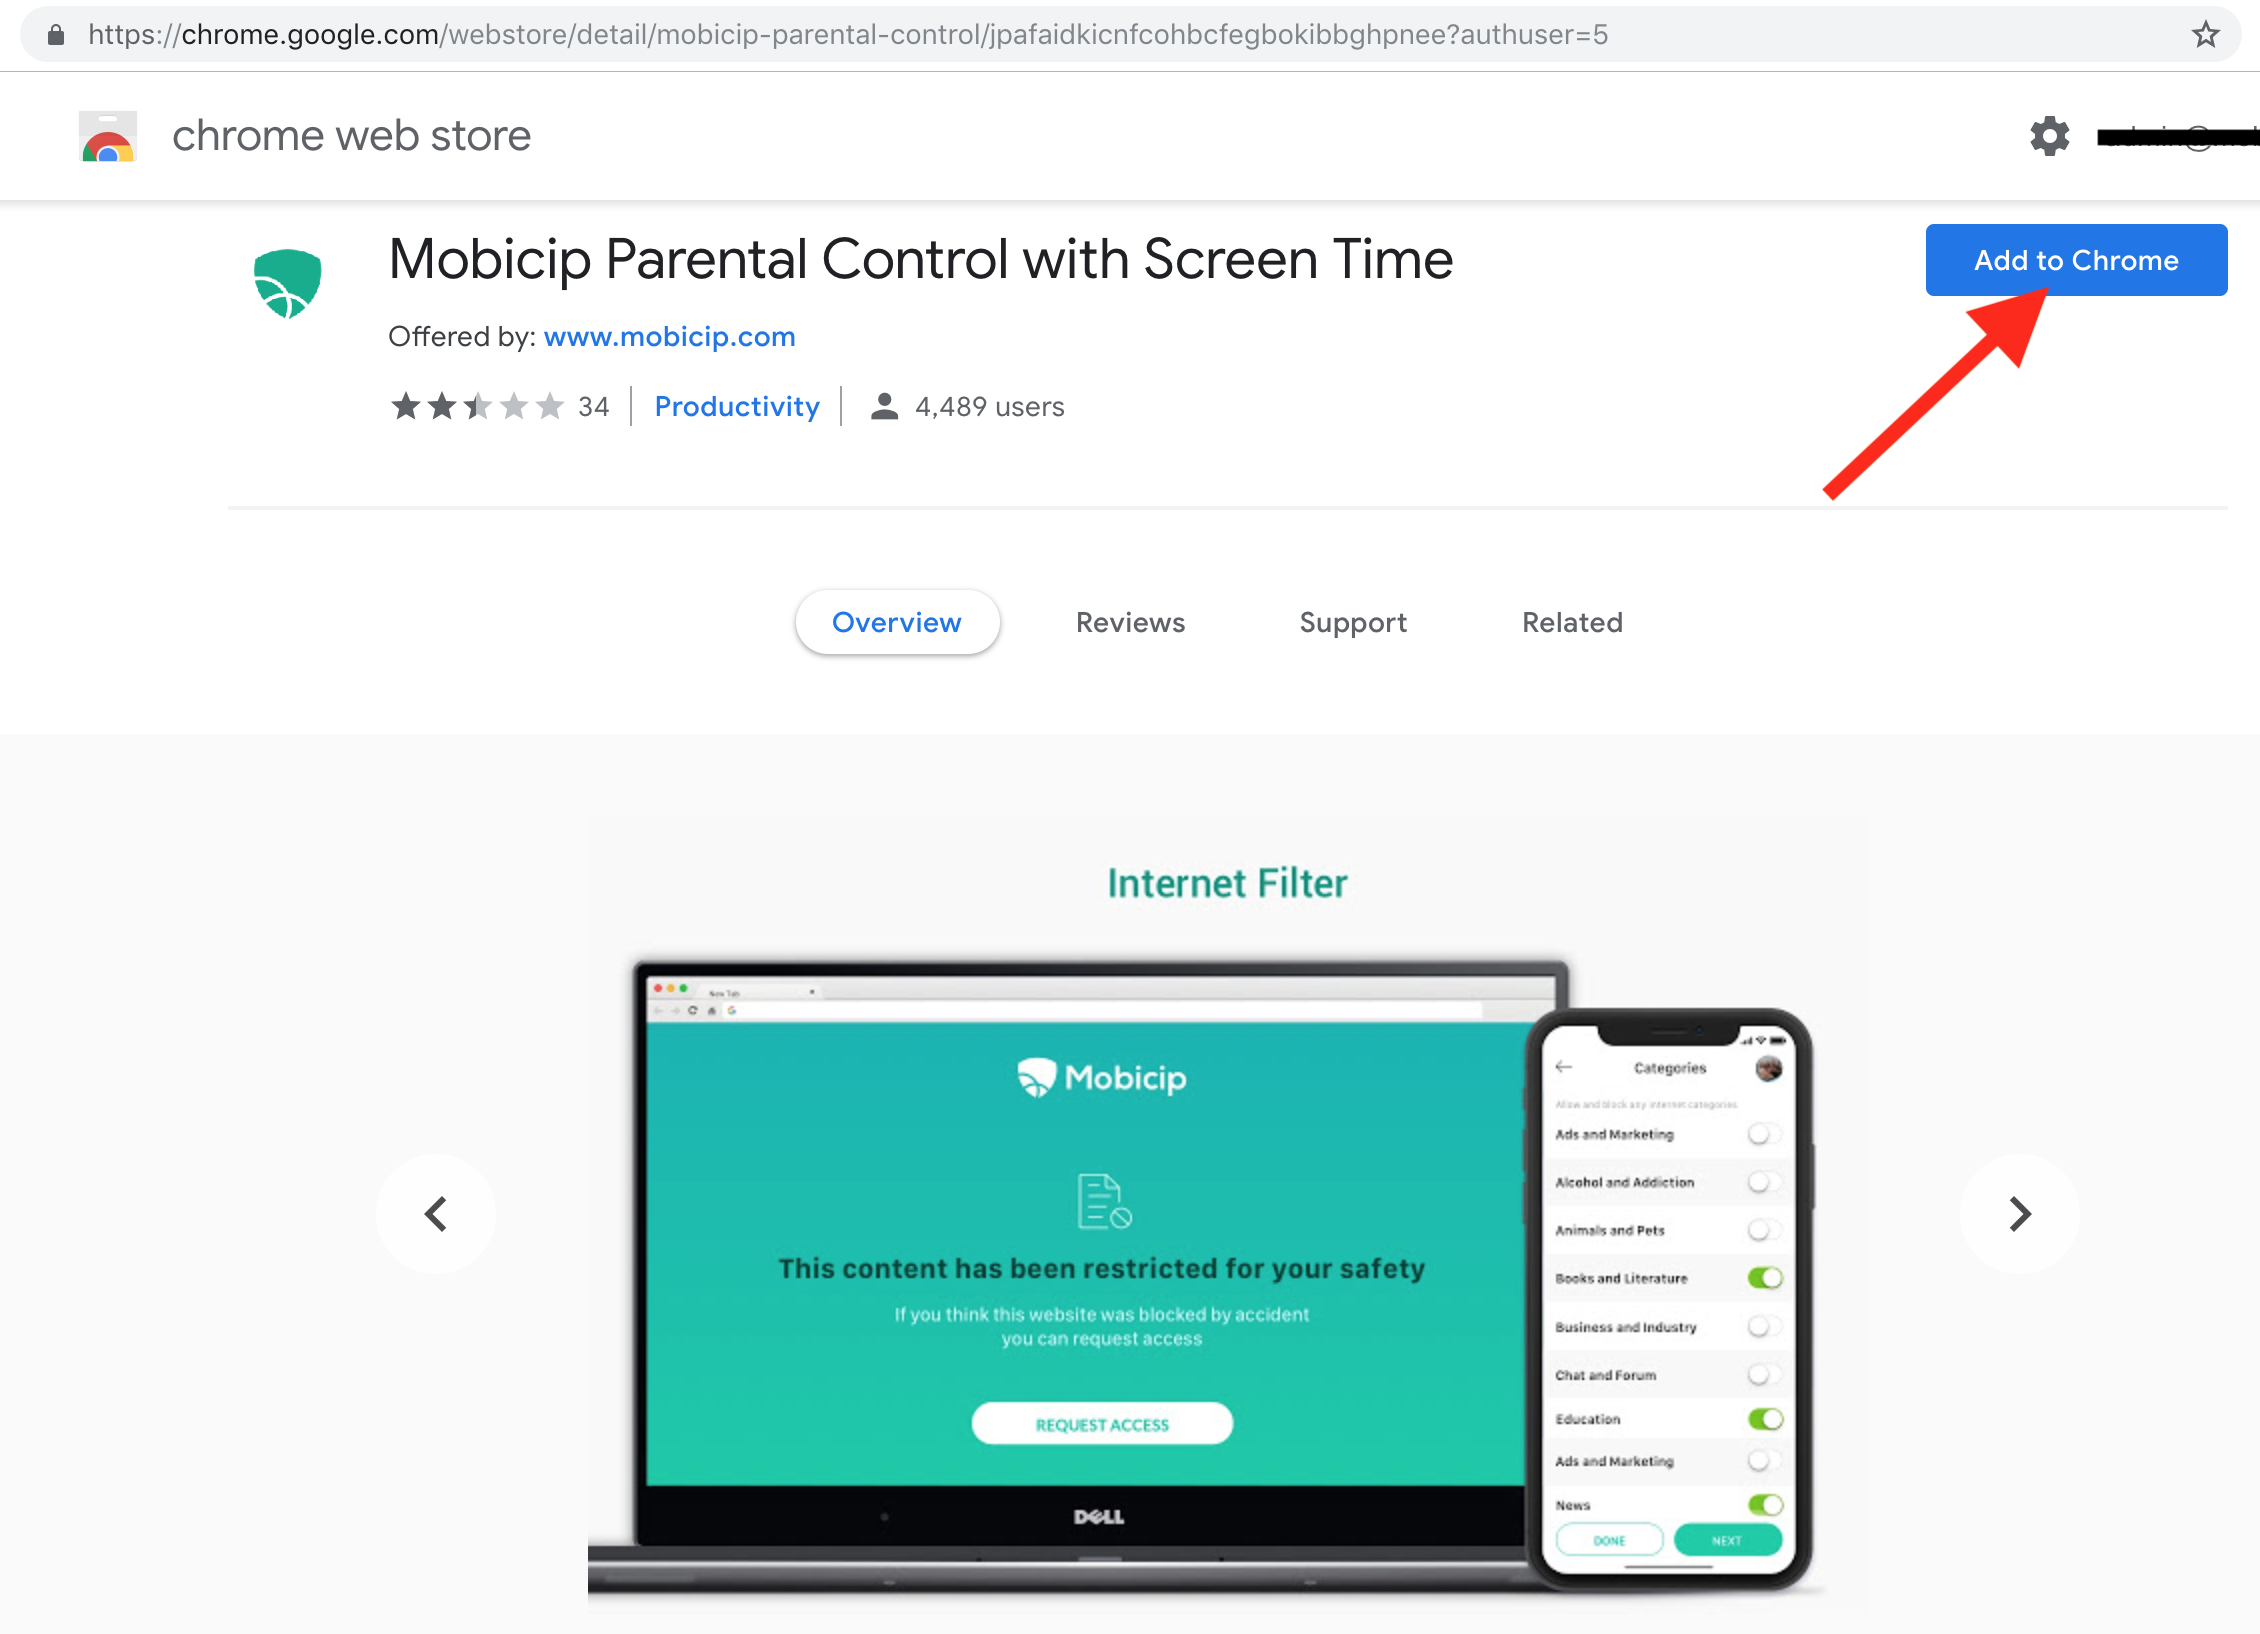 Mobicip Parental Control on Chrome WebStore